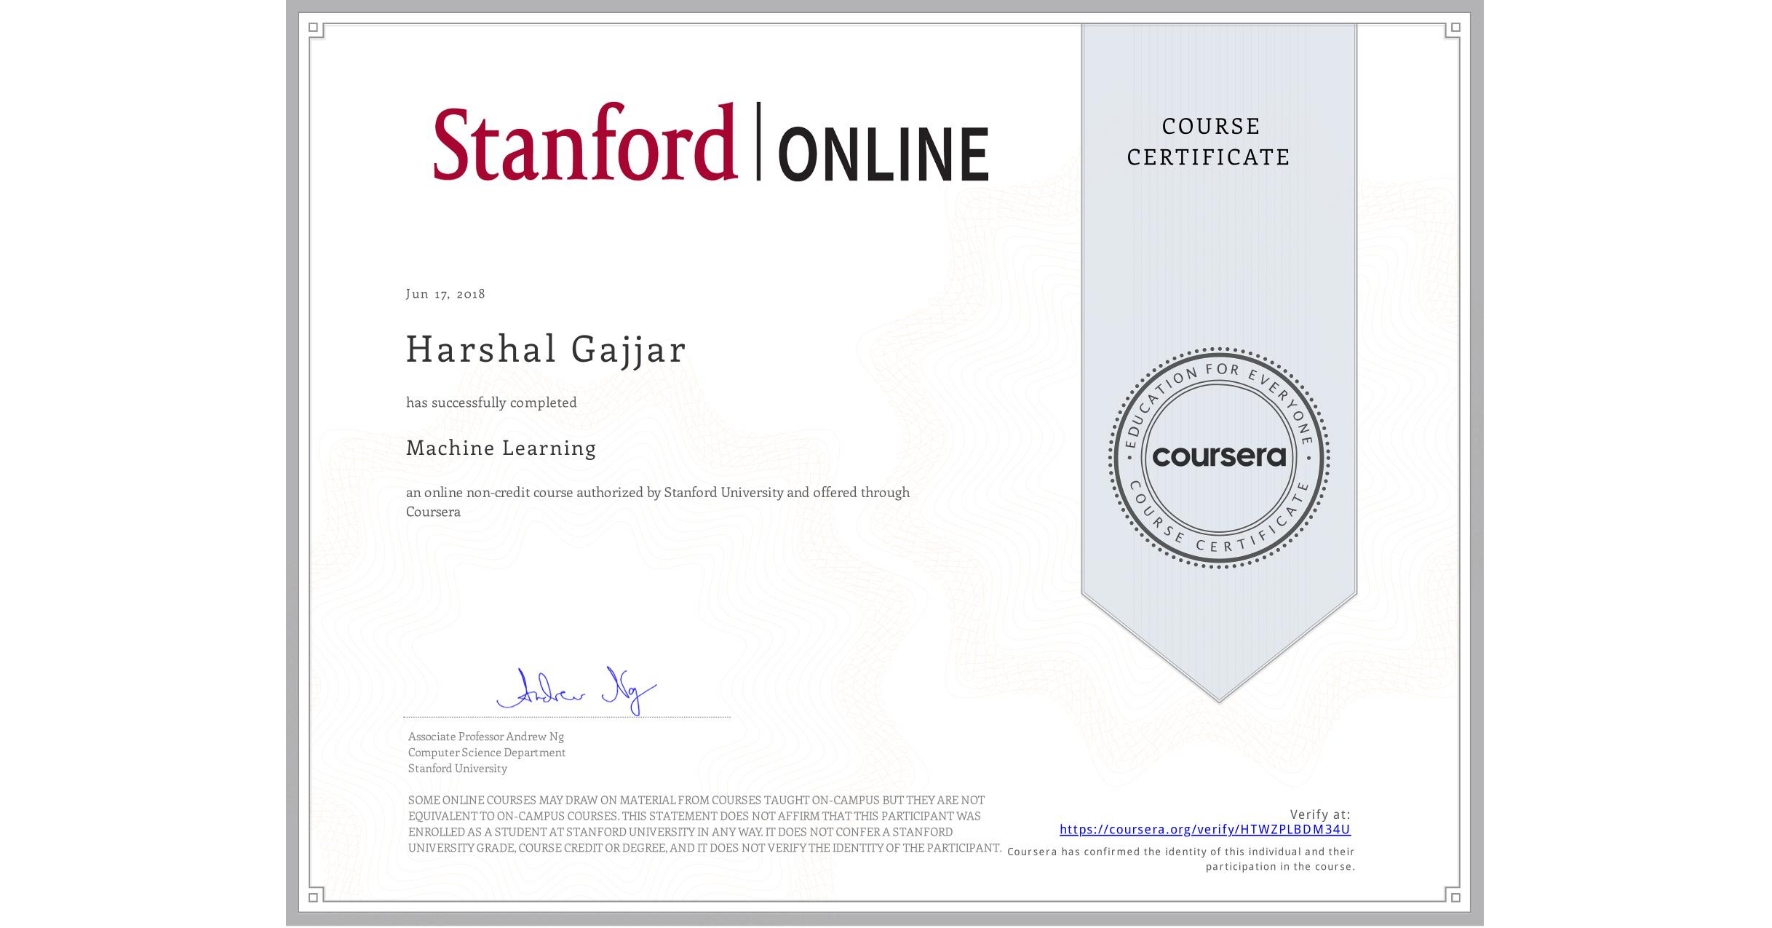 View certificate for Harshal Gajjar, Machine Learning, an online non-credit course authorized by Stanford University and offered through Coursera